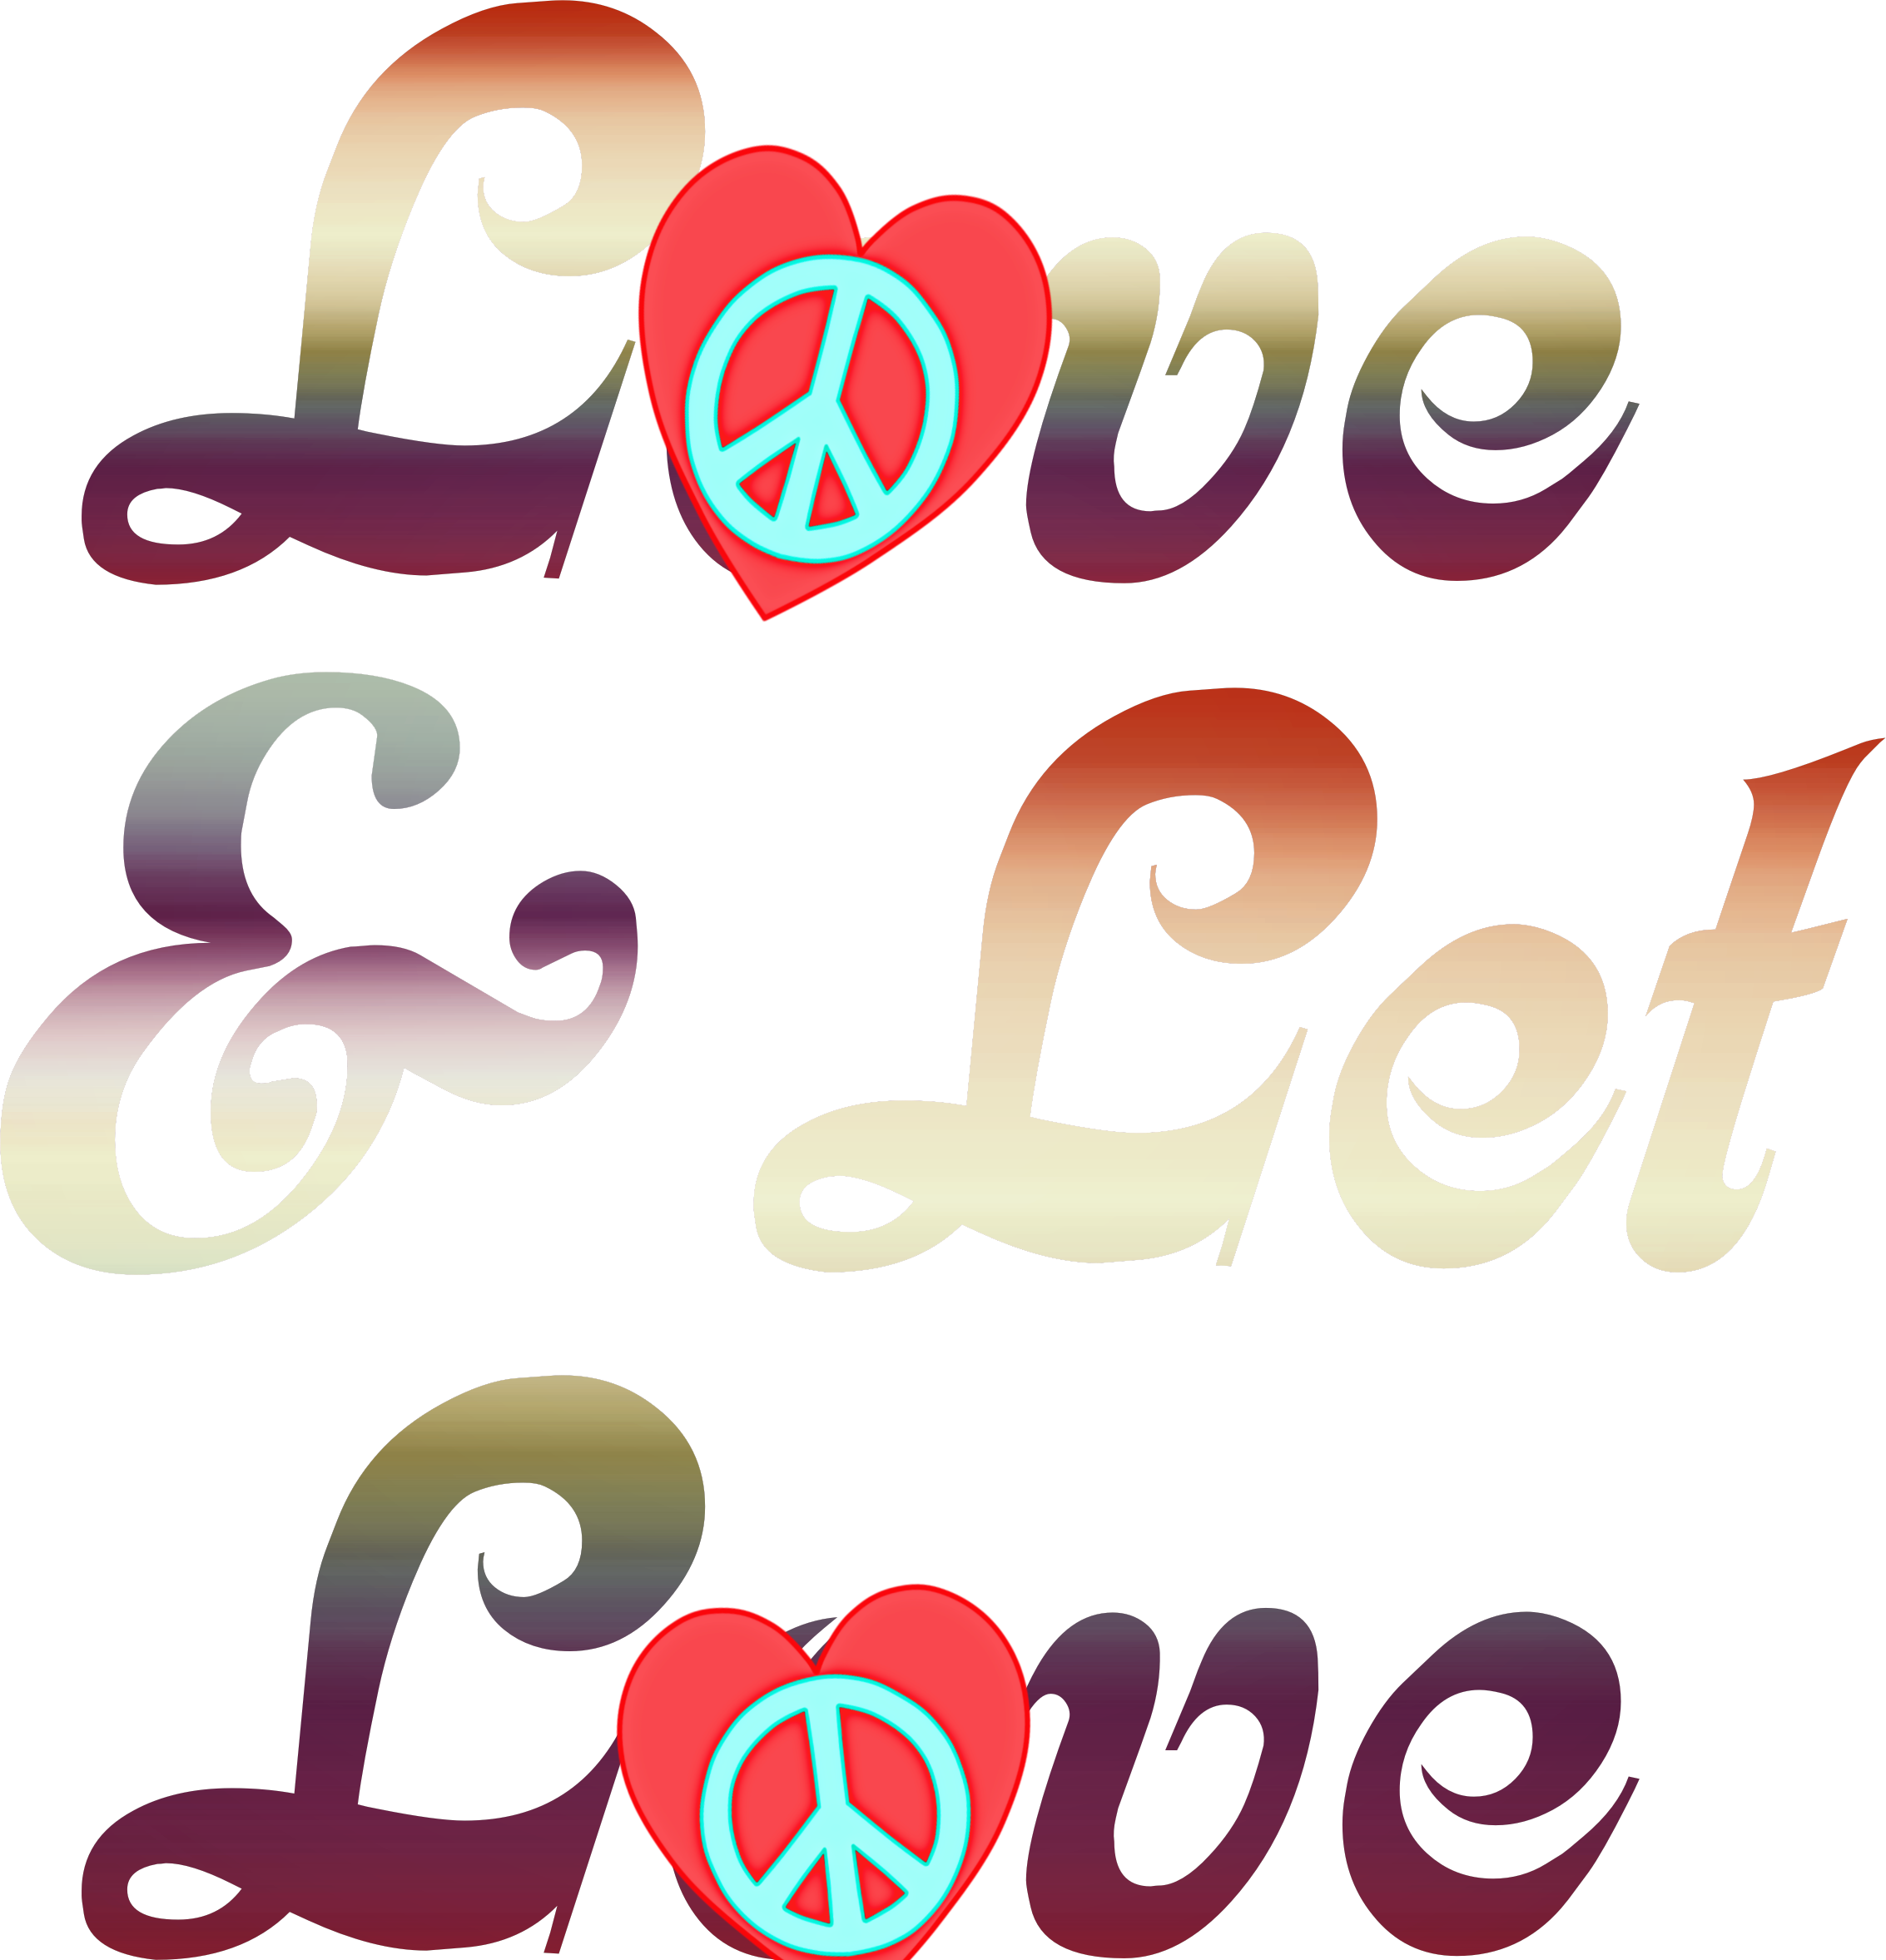 L☮ve & Let L☮ve/jlb Hippie Art, Hippie Chick,.